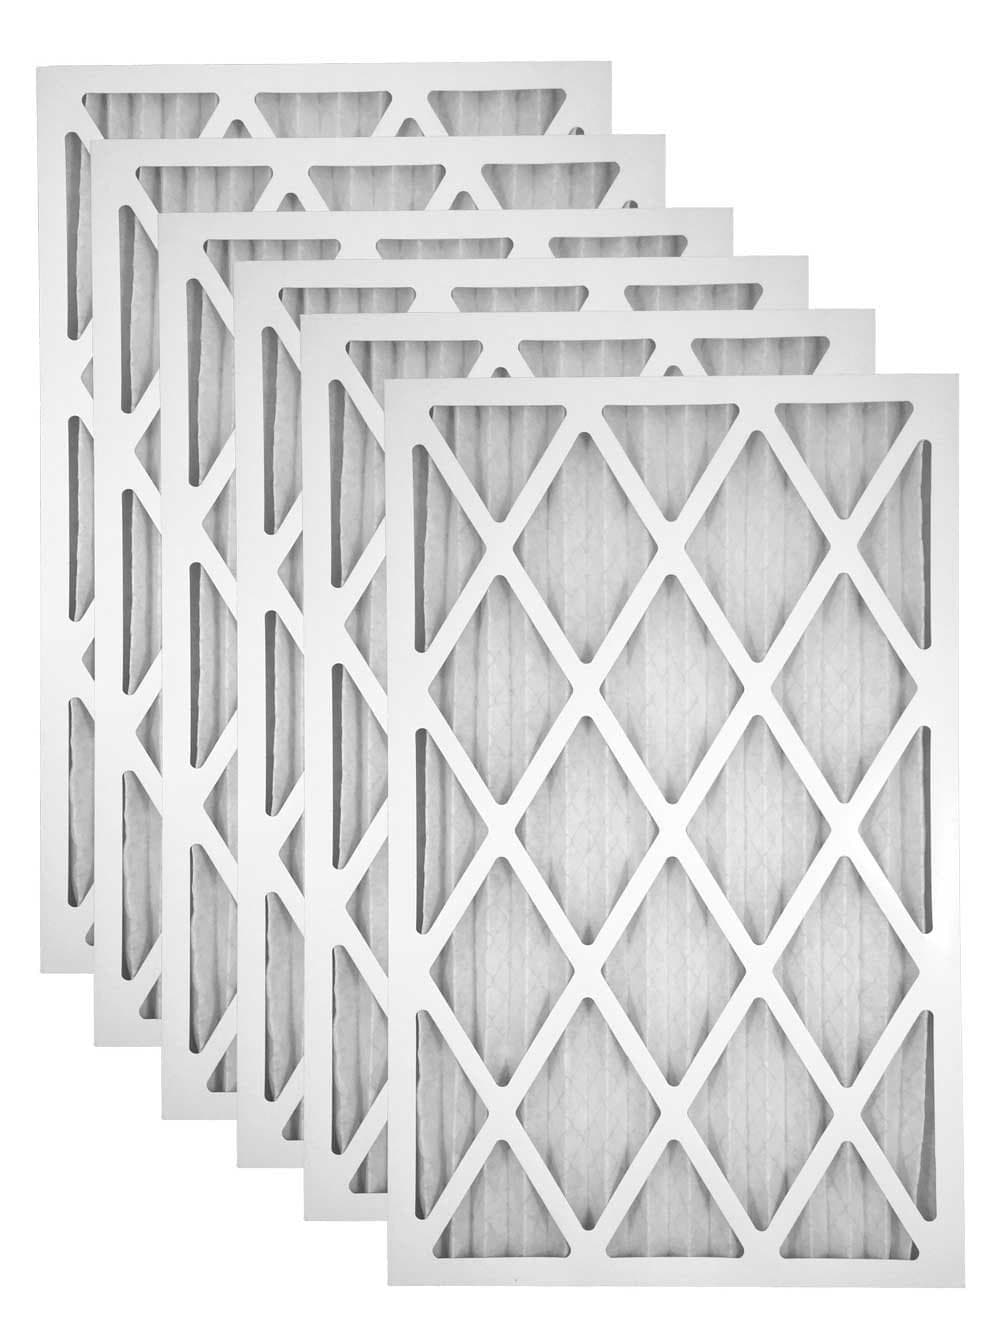 25x25x1 Merv 13 Pleated AC Furnace Filter - Case of 6 by Atomic Filters